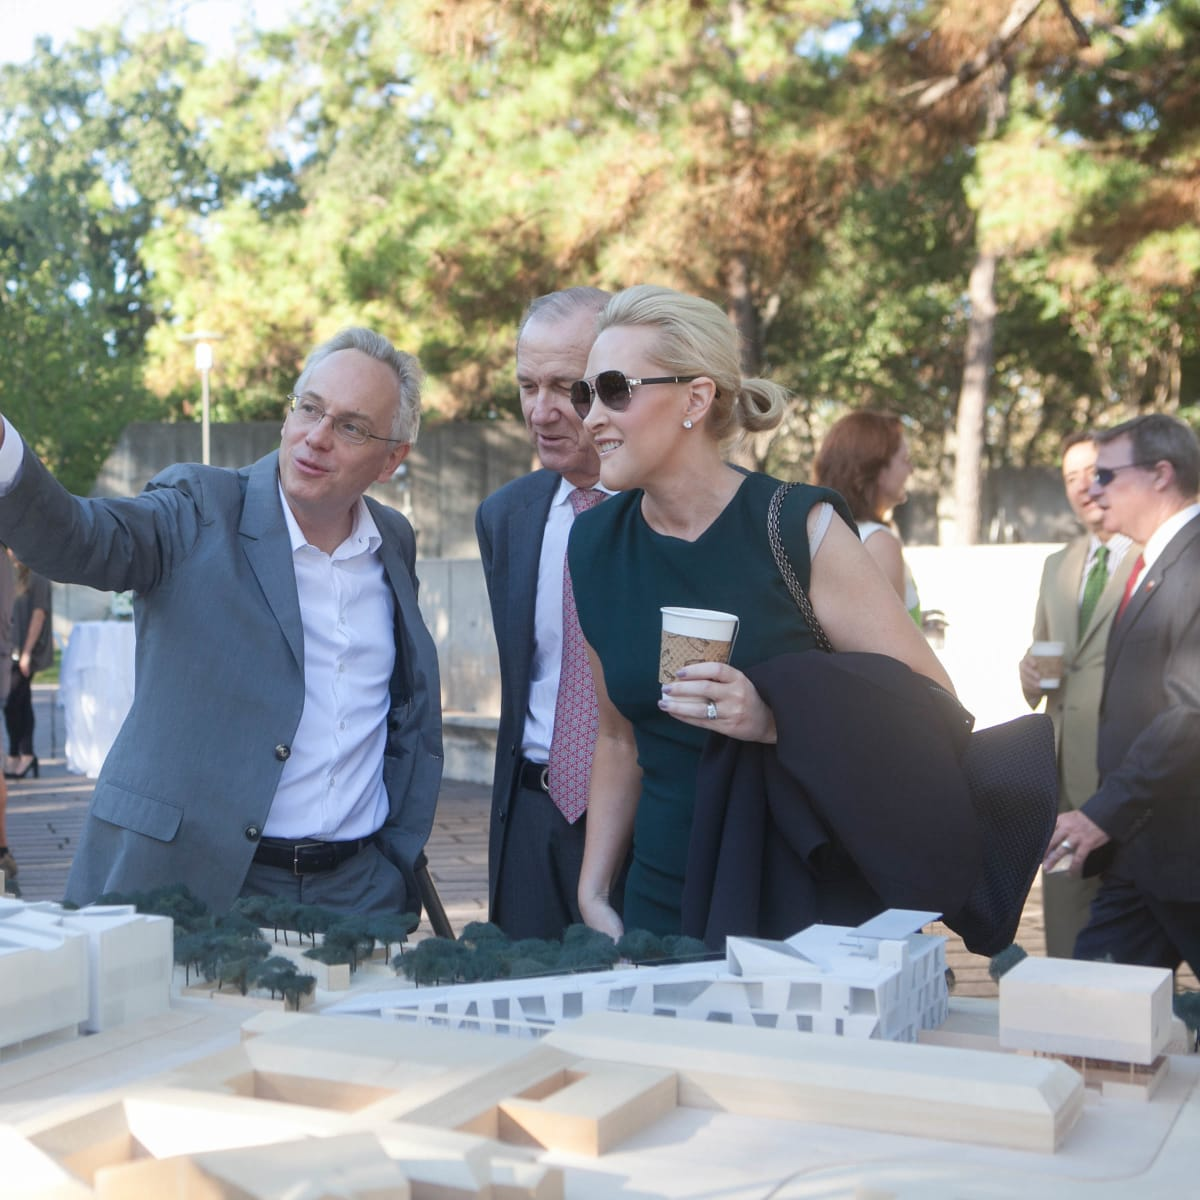 Chris McVoy of Steven Holl Architects at Museum of Fine Arts  Fayez S. Sarofim Campus and the new Glassell School of Art